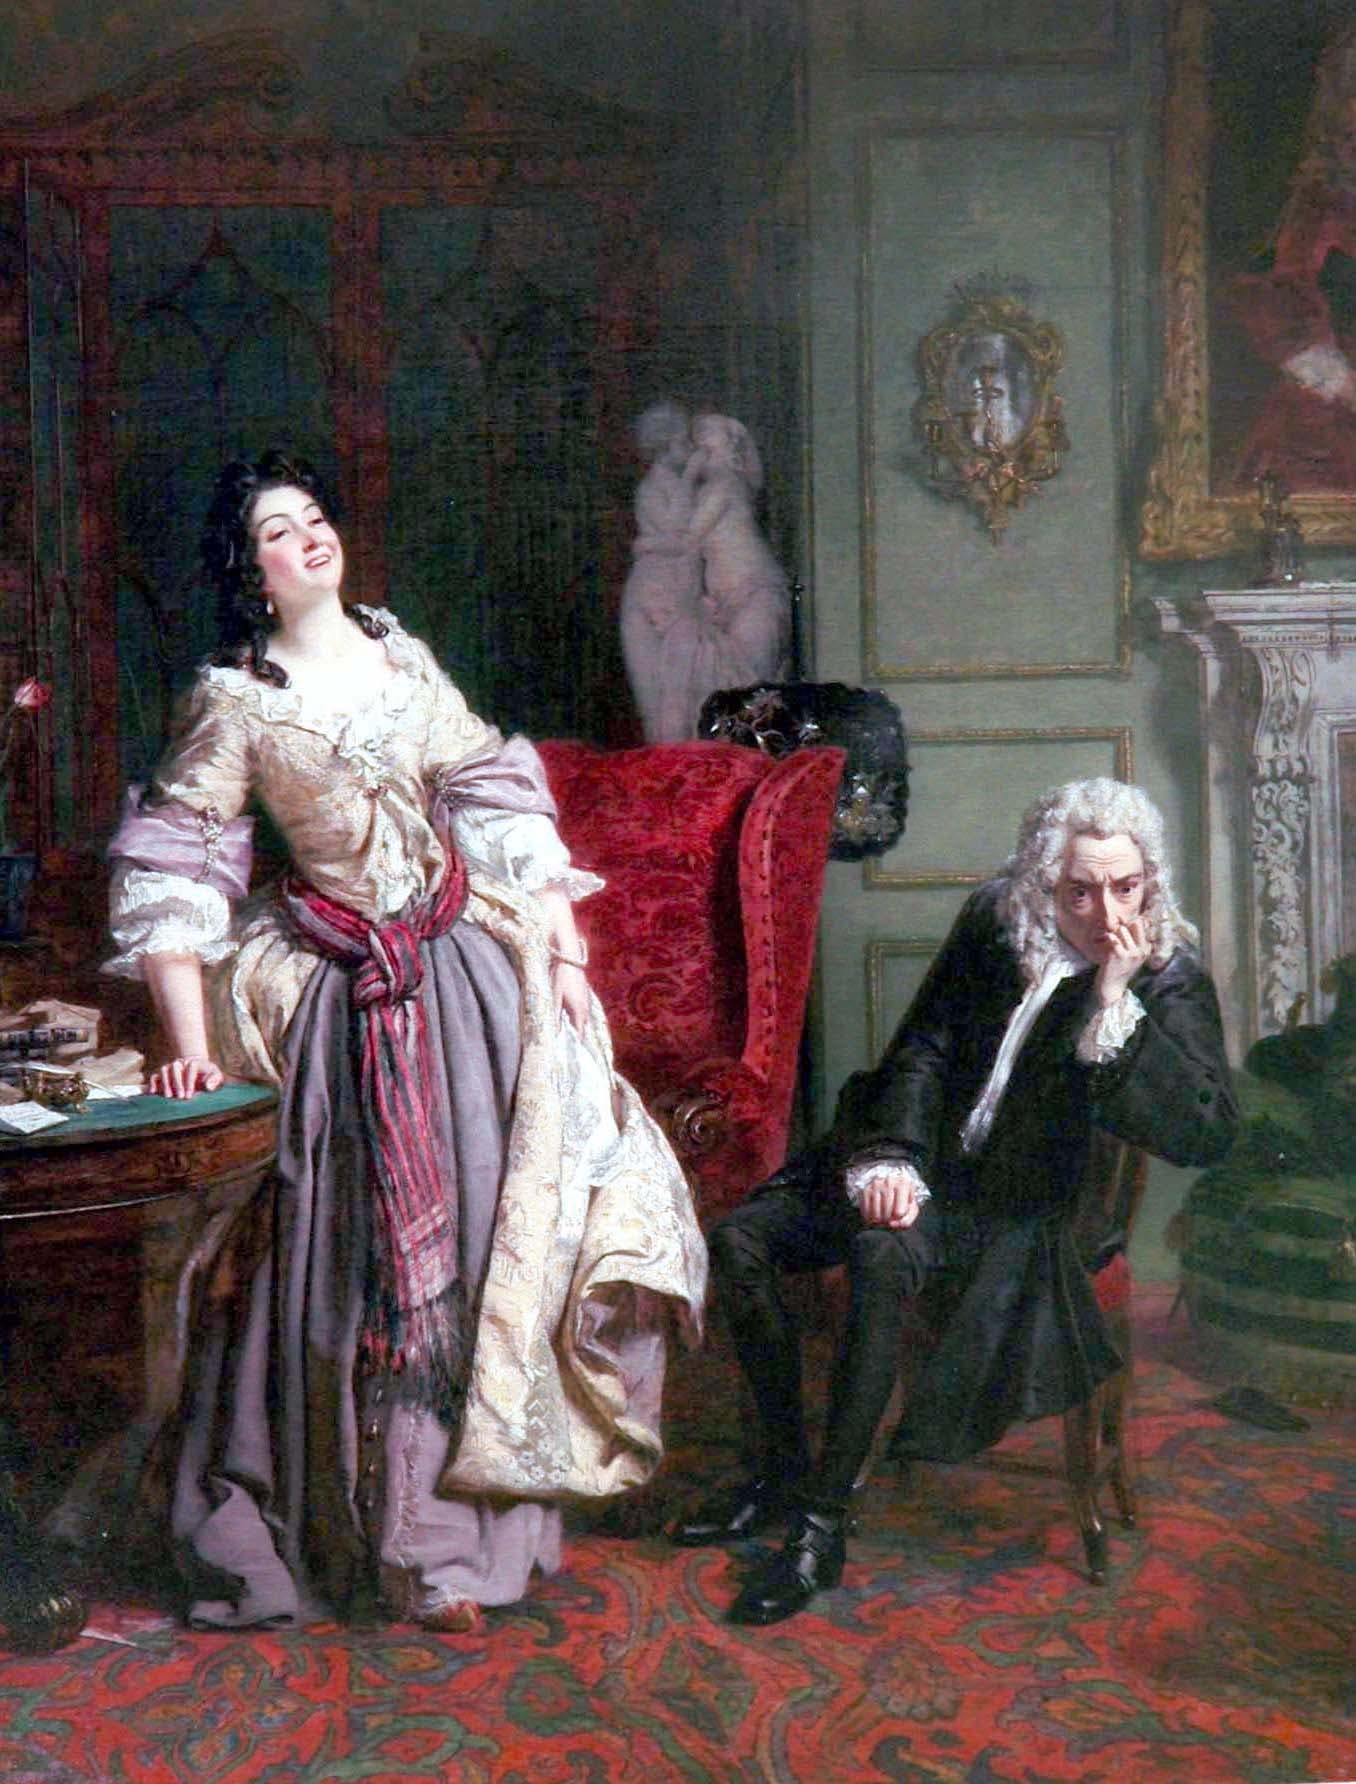 Alexander Pope declared his love to Lady Mary, who responded with laughter. A painting by William Firth